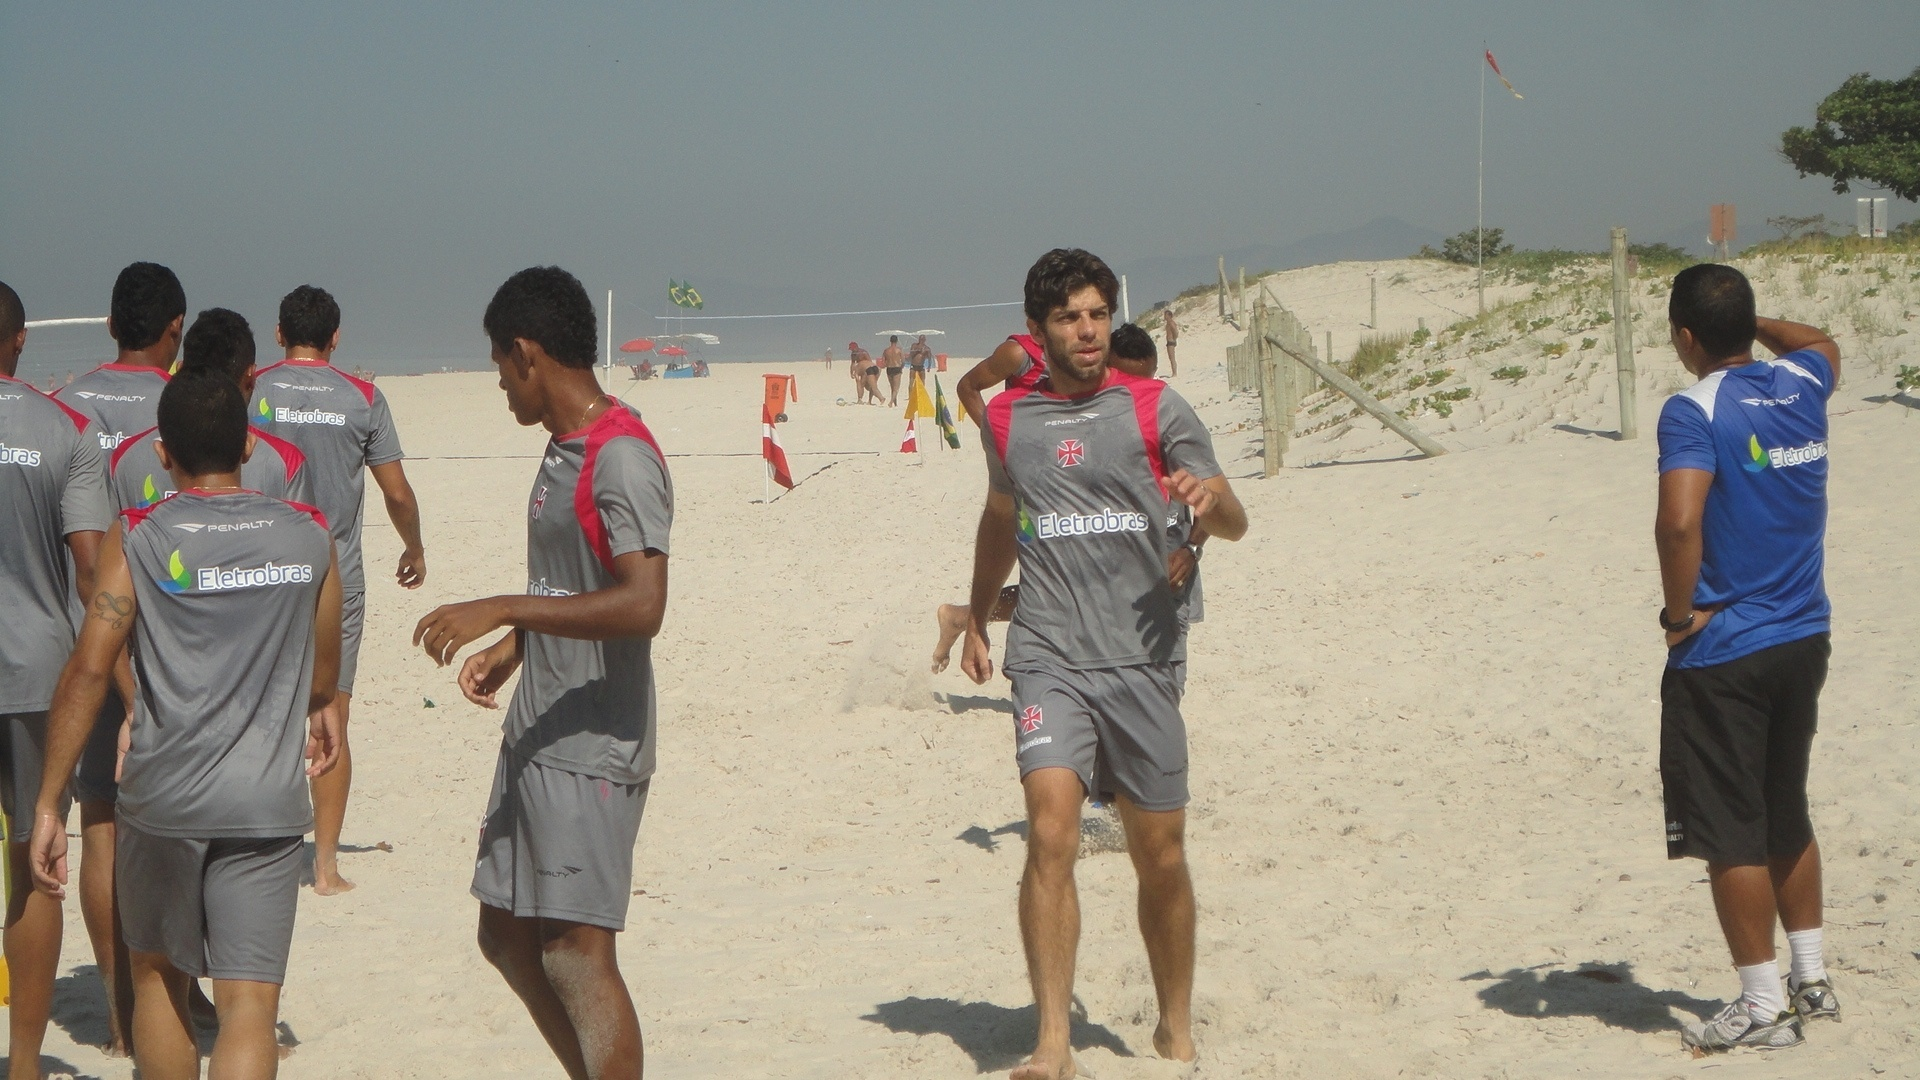 Juninho participa de treinamento em praia no Rio de Janeiro (14/03/2012)